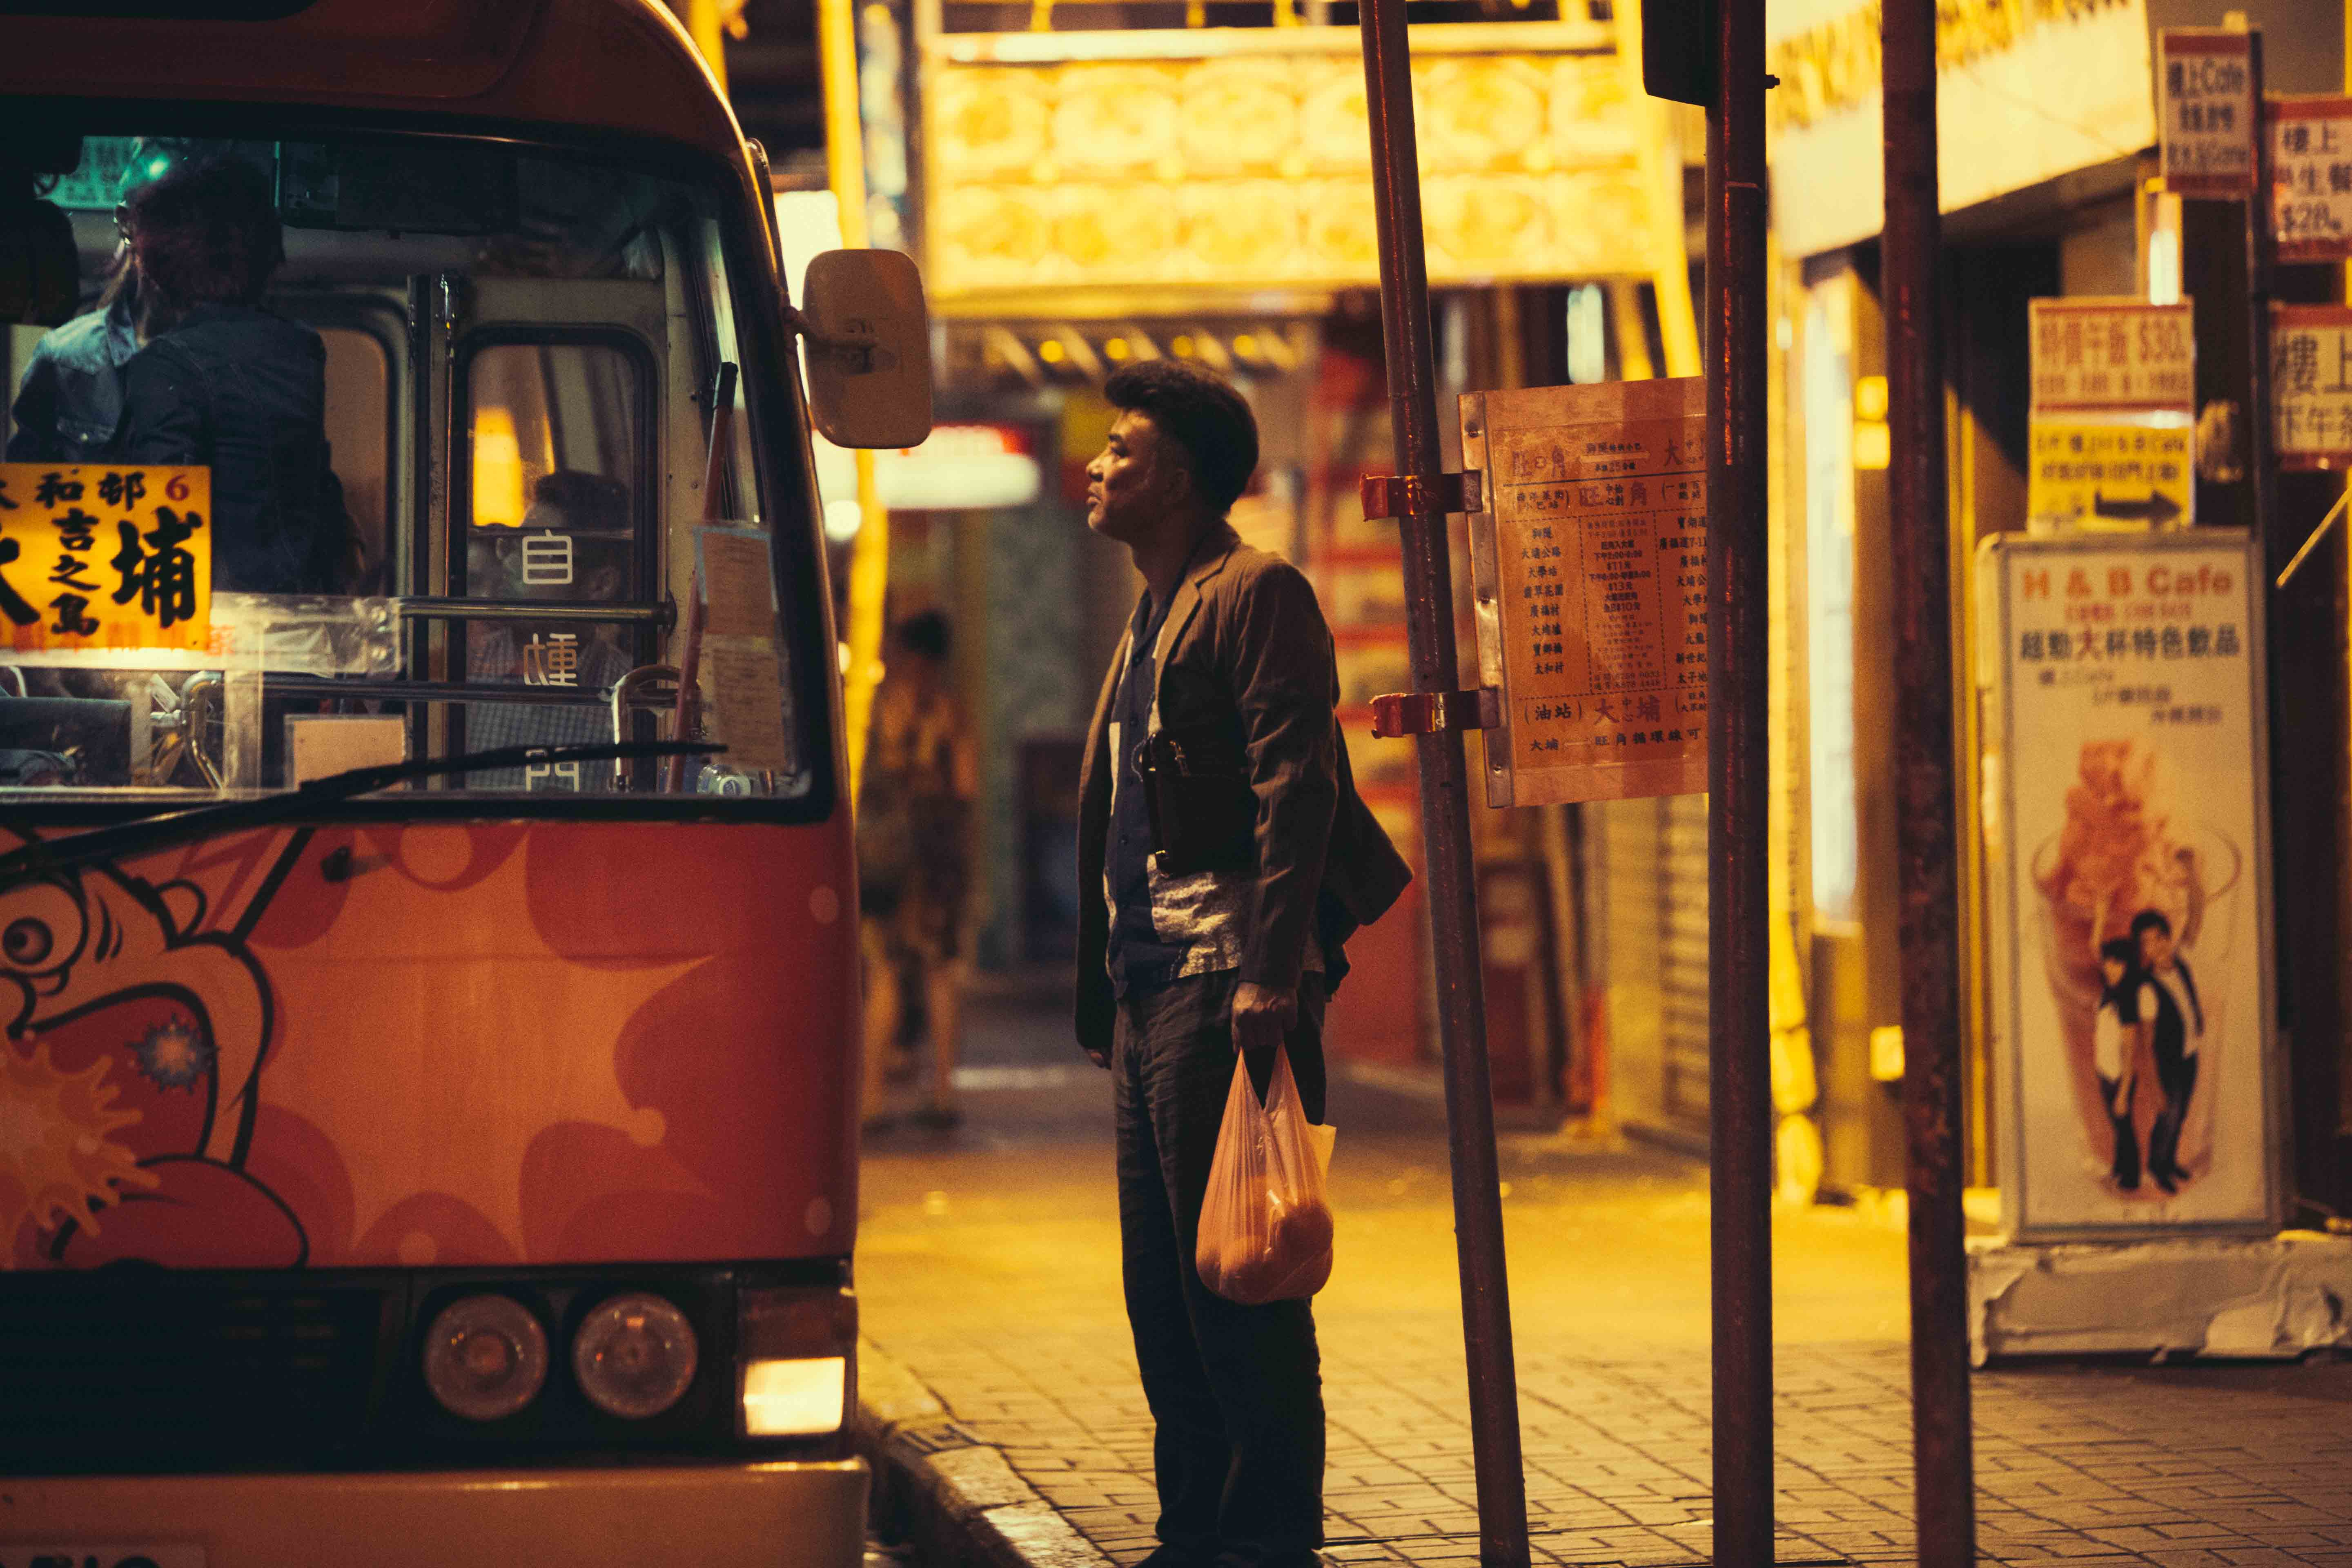 Boarding the bus to Tai Po Road in The Midnight After (2014)